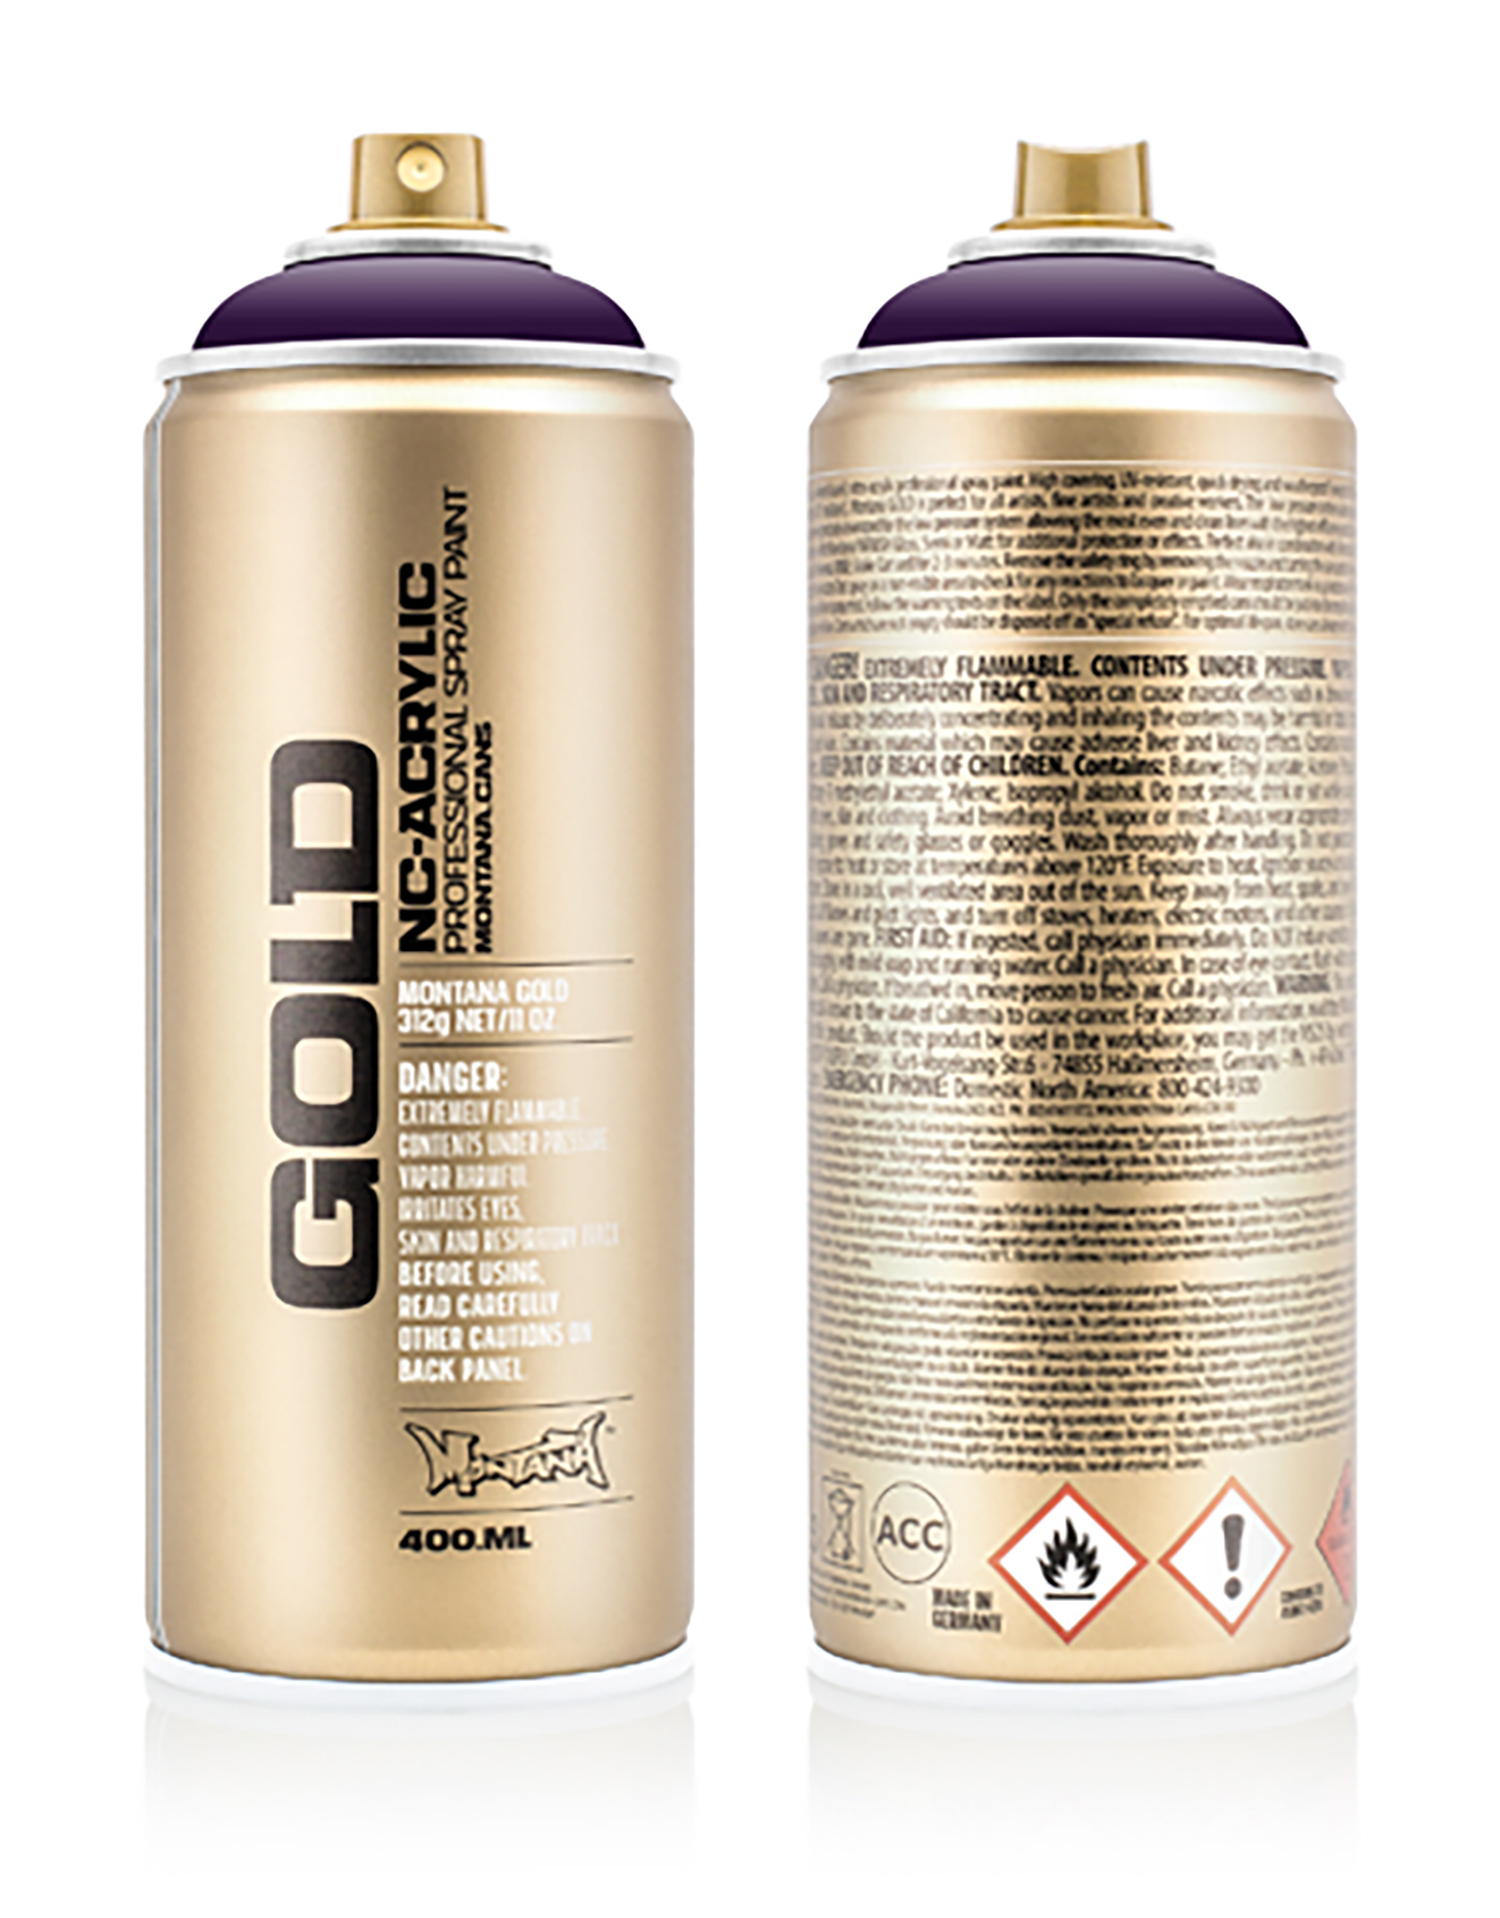 MONTANA-GOLD-SPRAY-400ML-G-4260